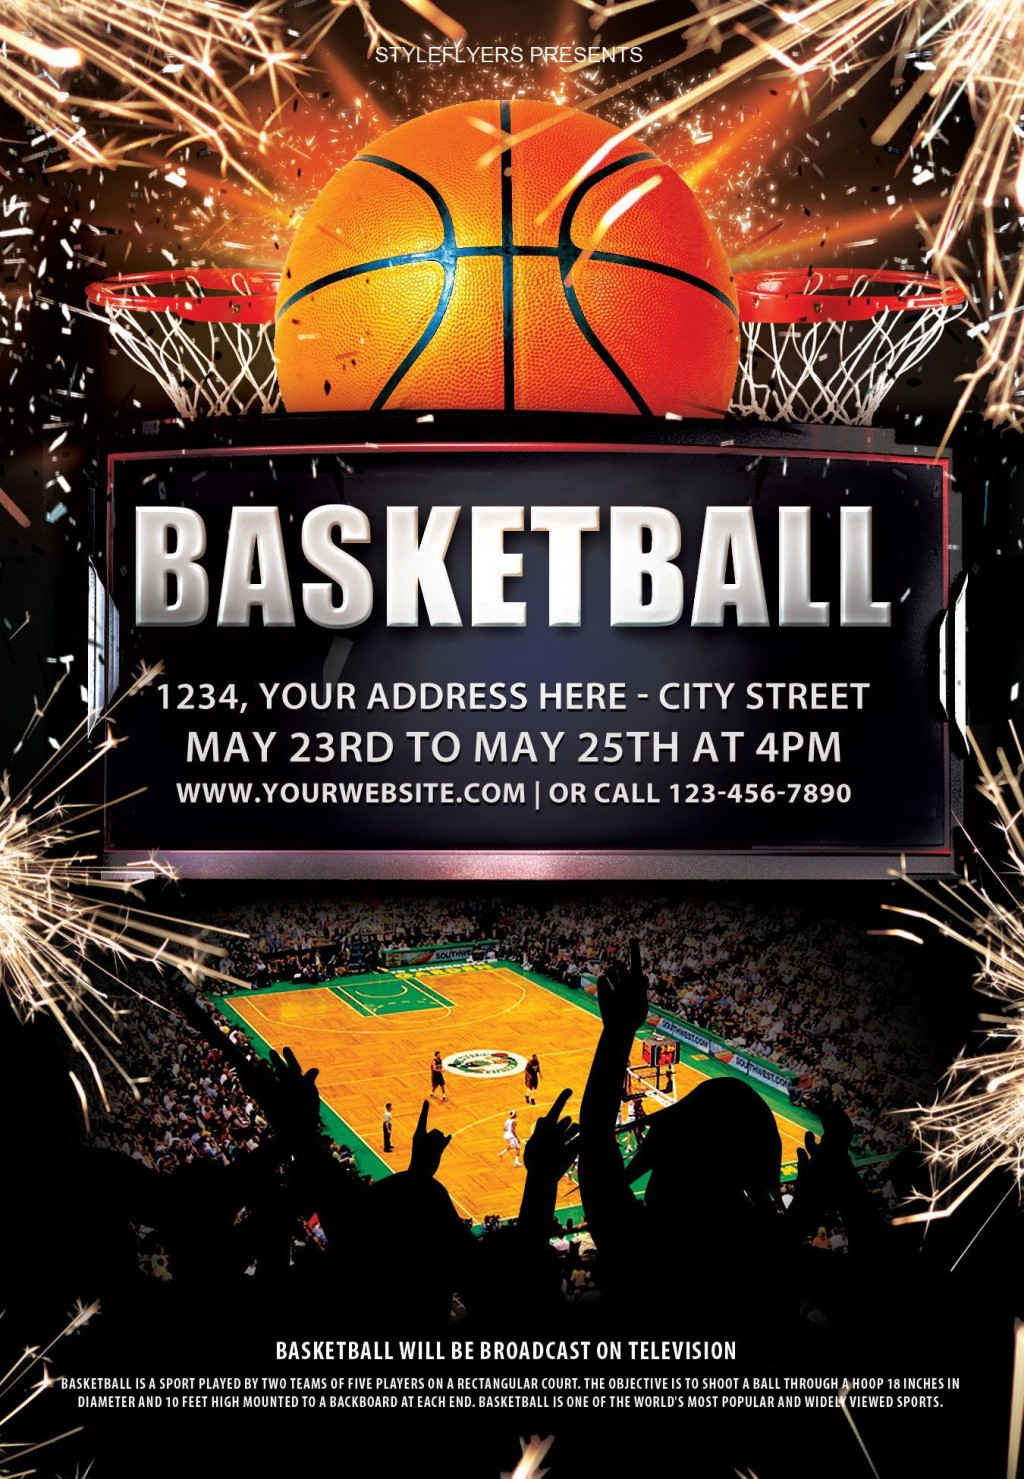 003 Beautiful Basketball Flyer Template Free Photo  Brochure Tryout CampLarge